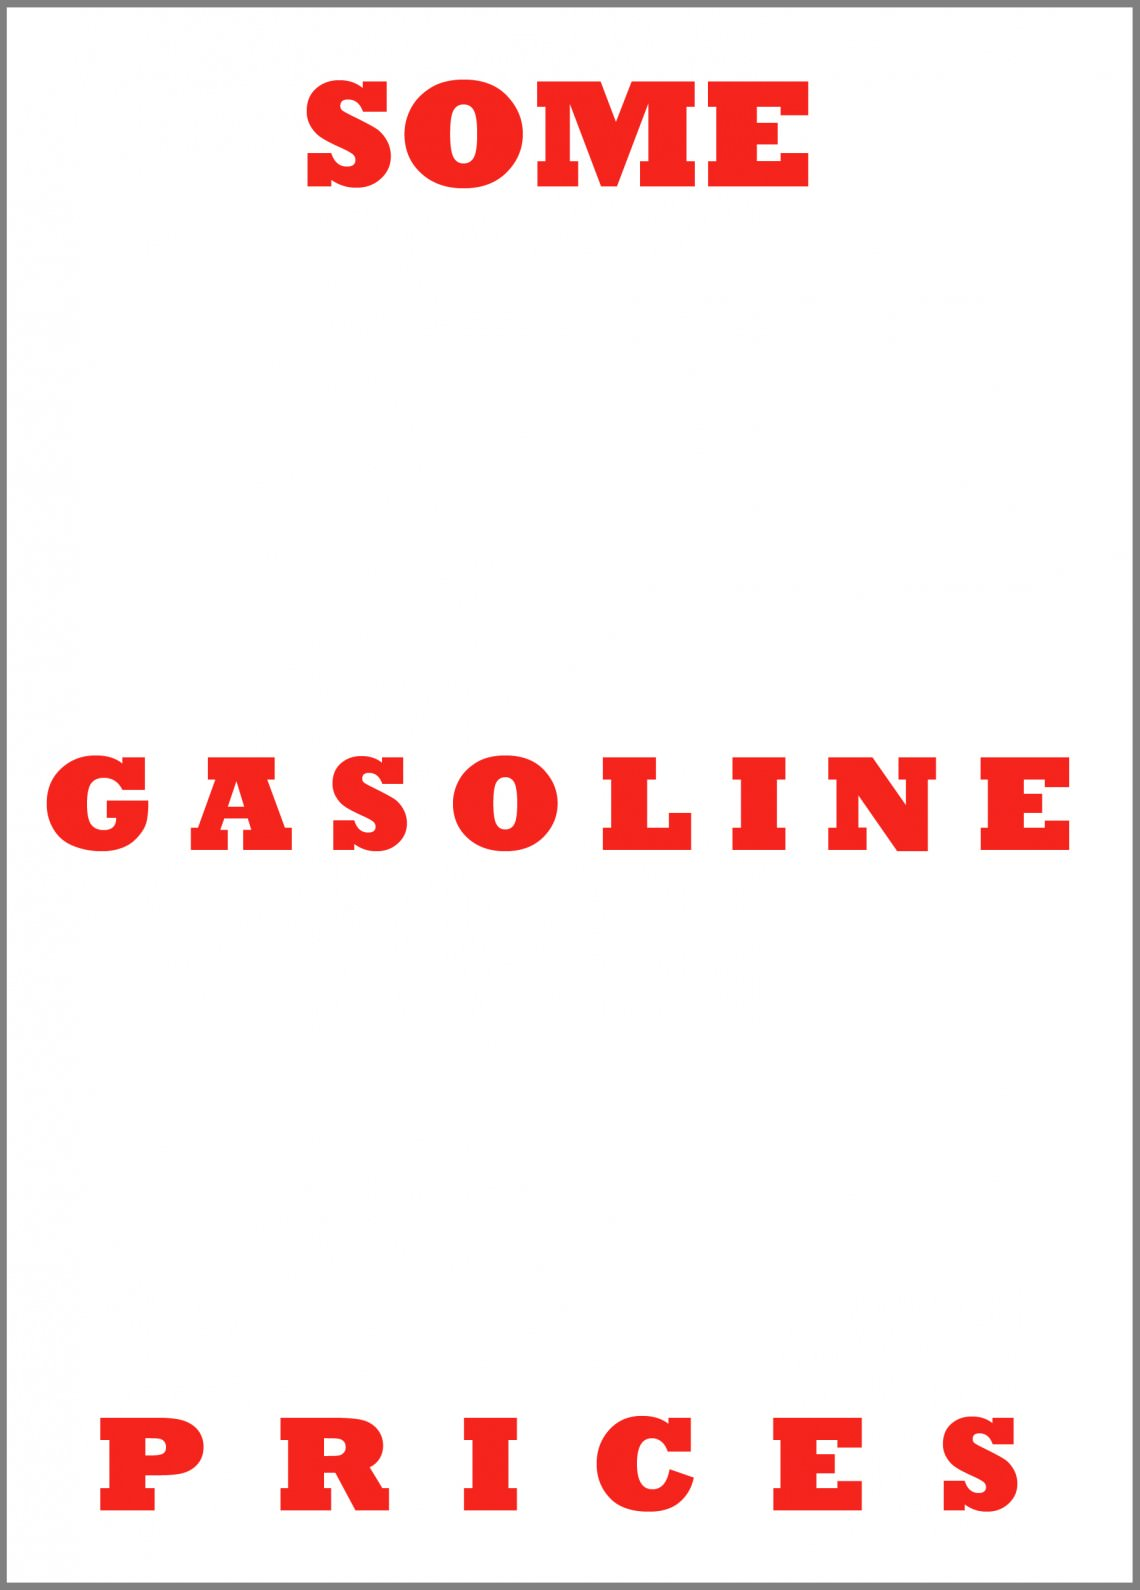 - SOME GASOLINE PRICES